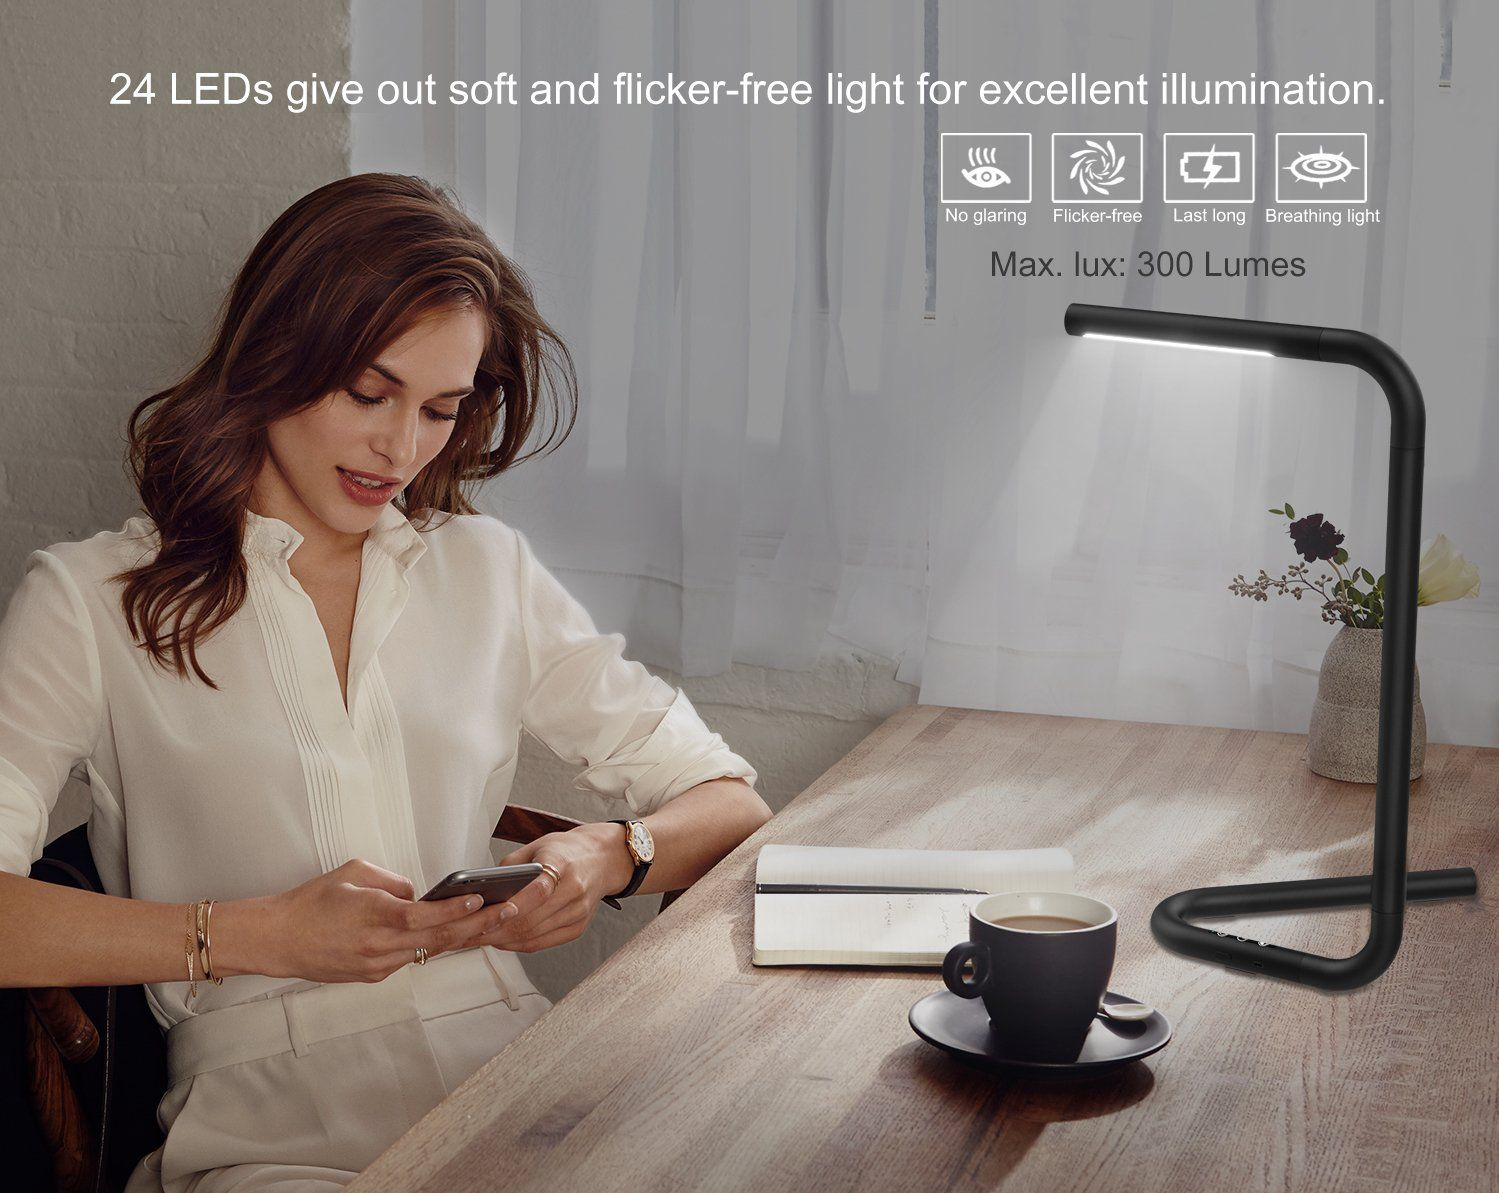 Memory Function Stepless Brightness//Color Temperature 4.5W Cordless Portable Modern Table Lamp with 4400mAh Rechargeable Battery for Office and Home Touch Control MoKo LED Desk Lamp Black